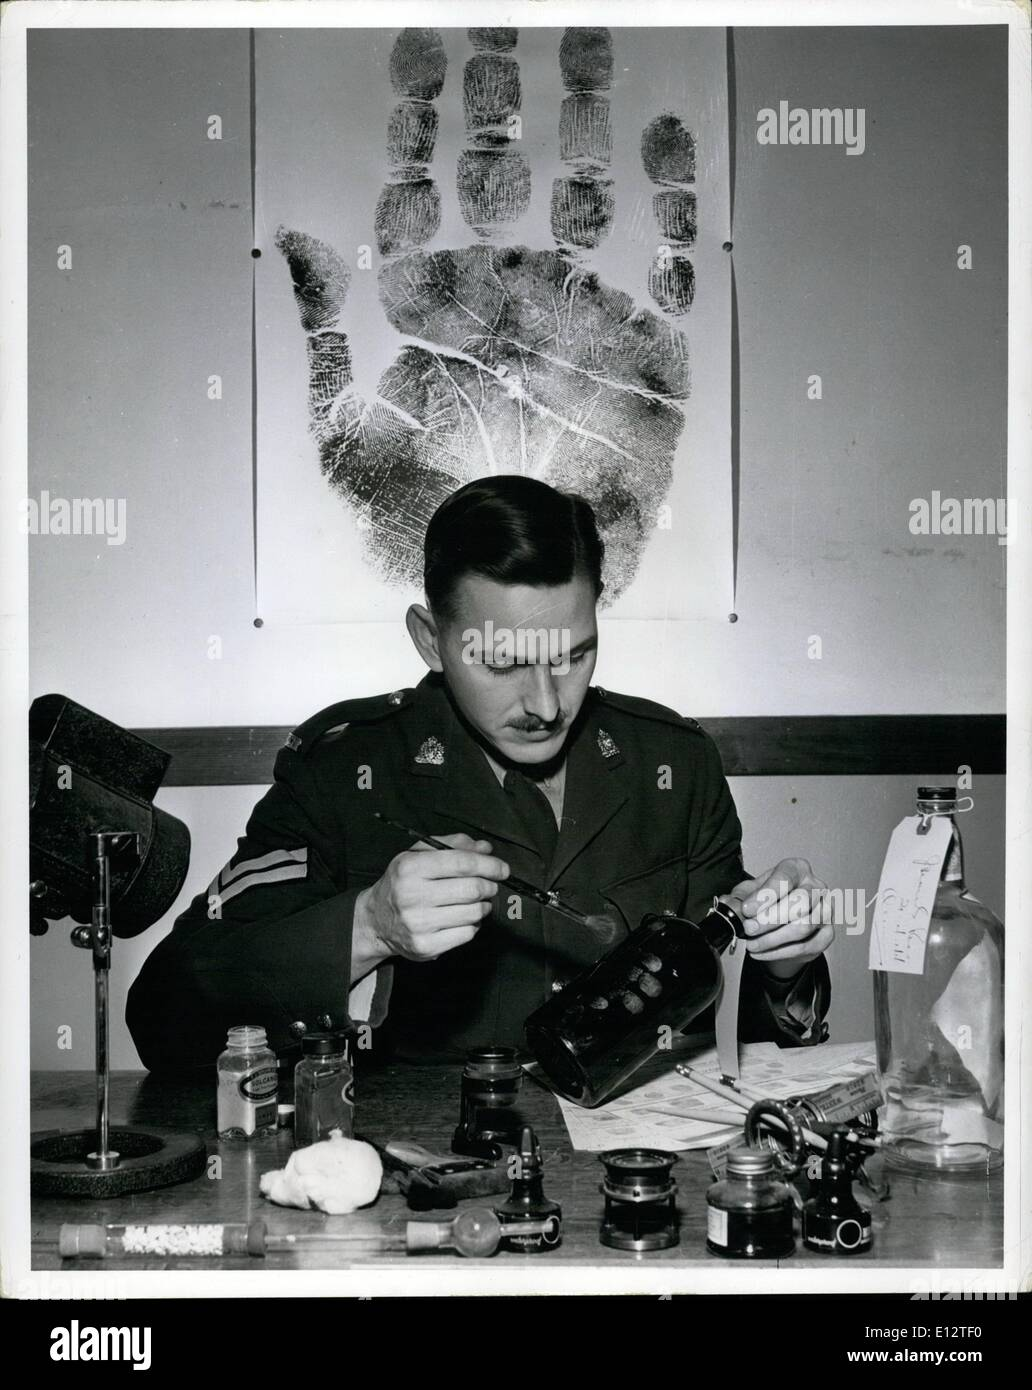 Feb. 25, 2012 - Corporal J.H.S.P. Jones, in charge of the R.C.M.P. Criminal Investigation Branch Photo and Fingerprint Section at Regina, Sask., examines a bottle for fingerprints. The bottle, evidence in a police investigation, was taken from the scene of the crime. - Stock Image